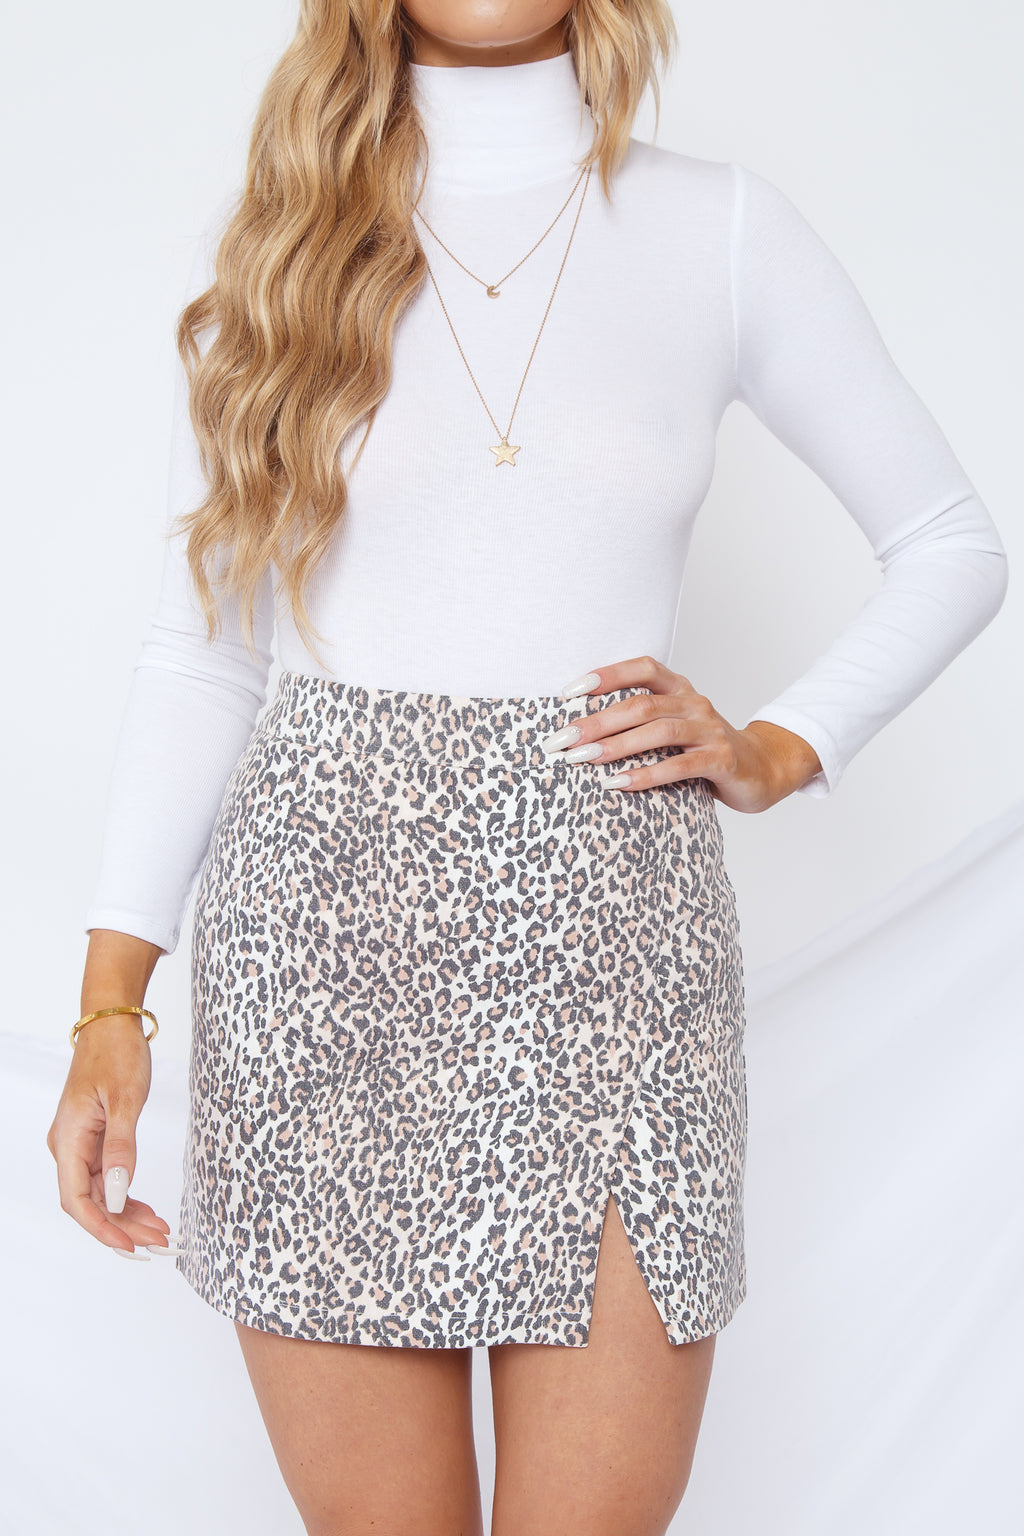 Night Out of Town Skirt